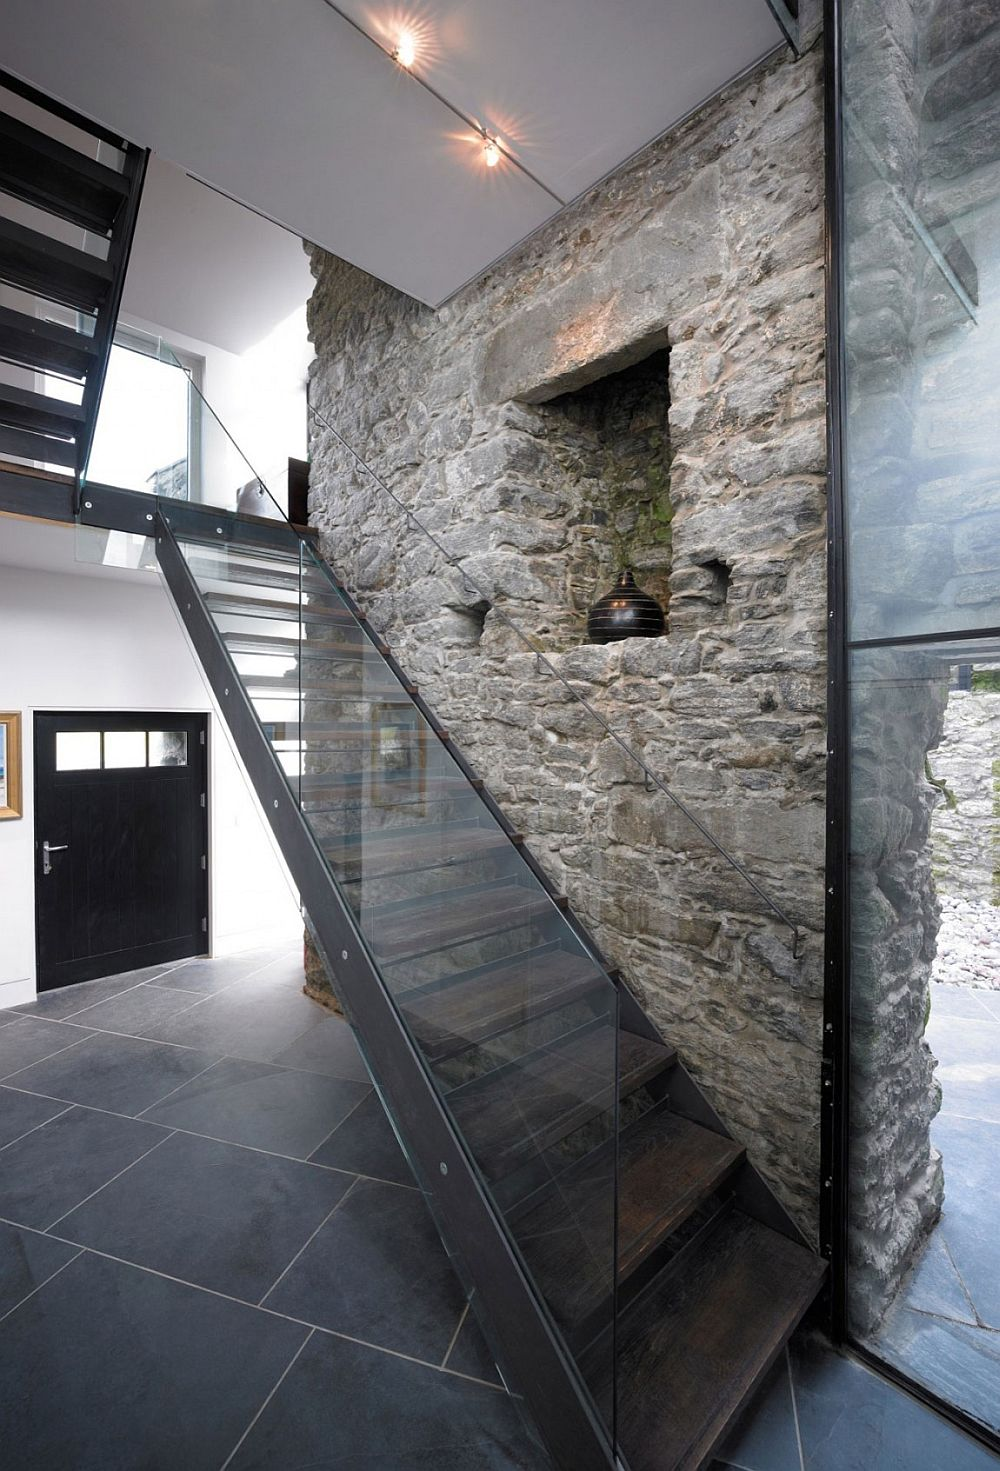 Glass, stone and steel come together inside the modern home